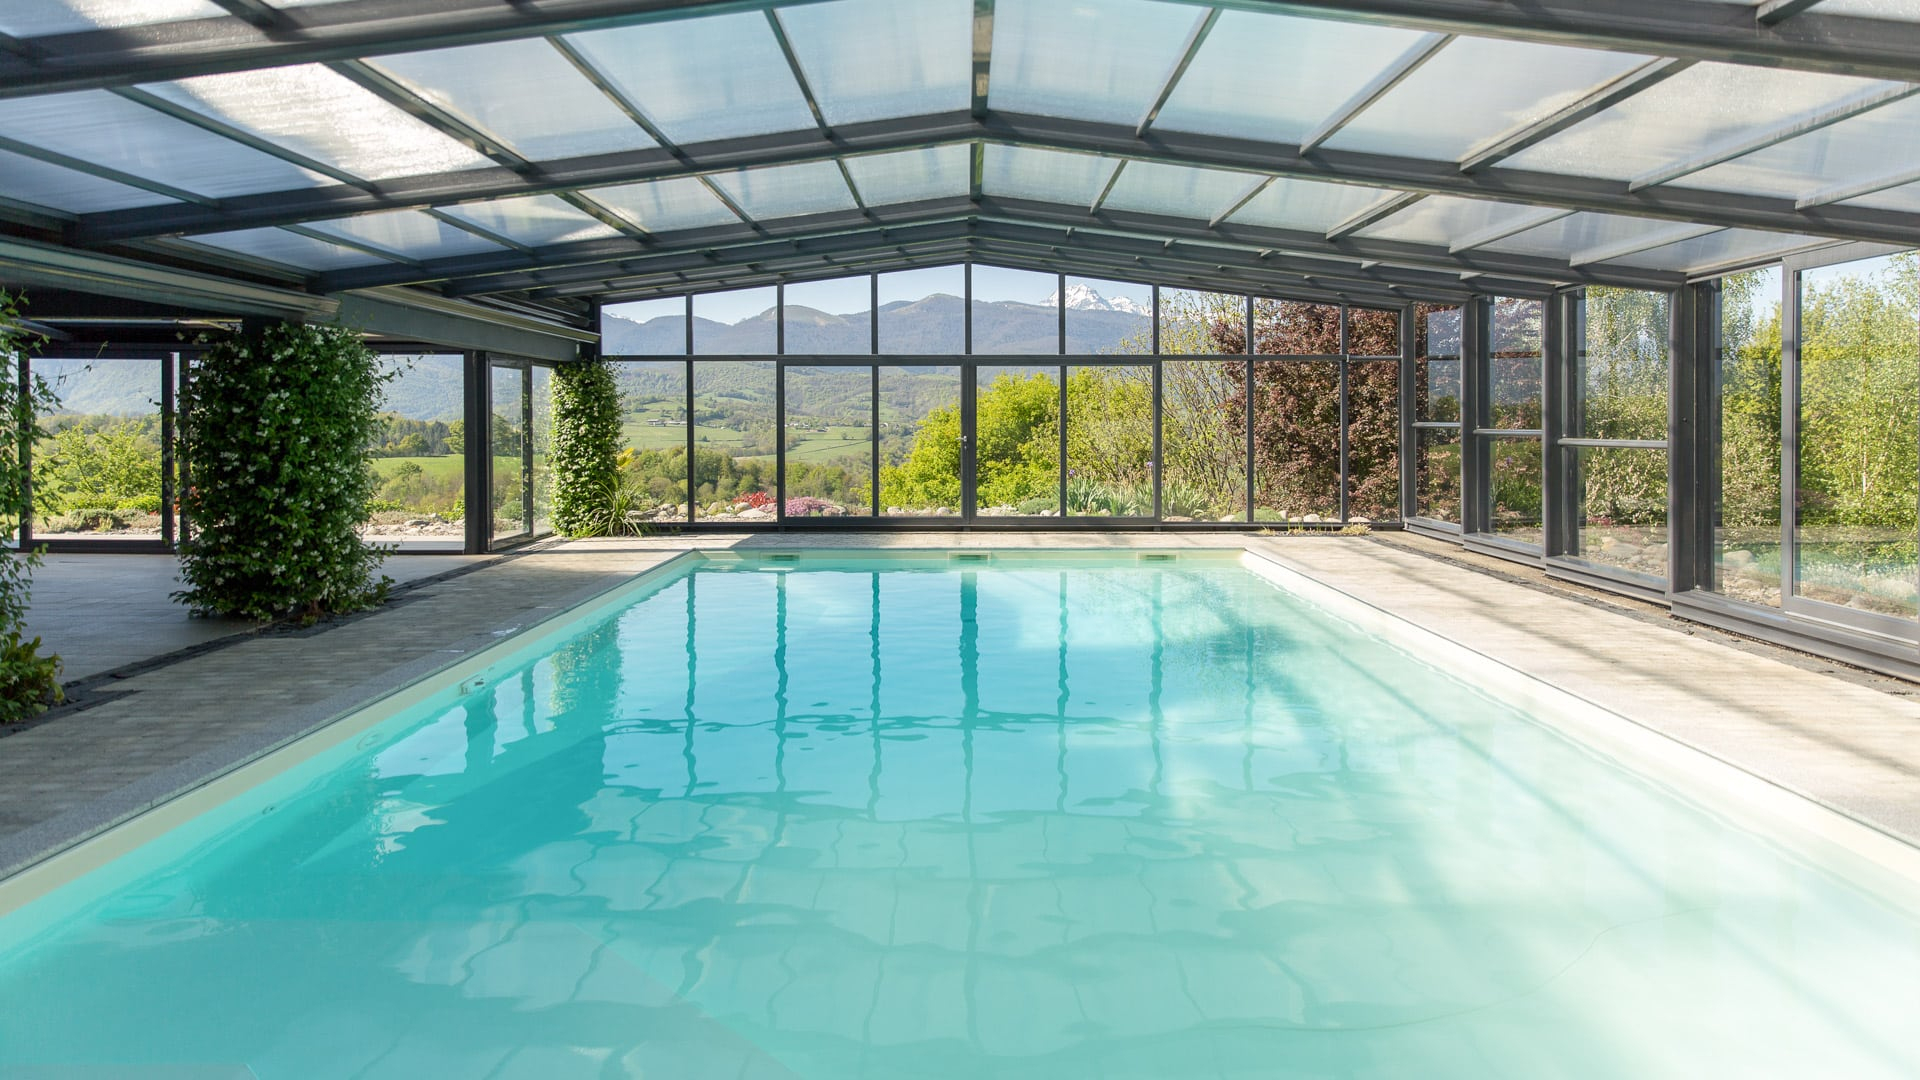 Union Wall-Mounted Pool Enclosure - Wall-Mounted Enclosure ... encequiconcerne Piscine Epdm